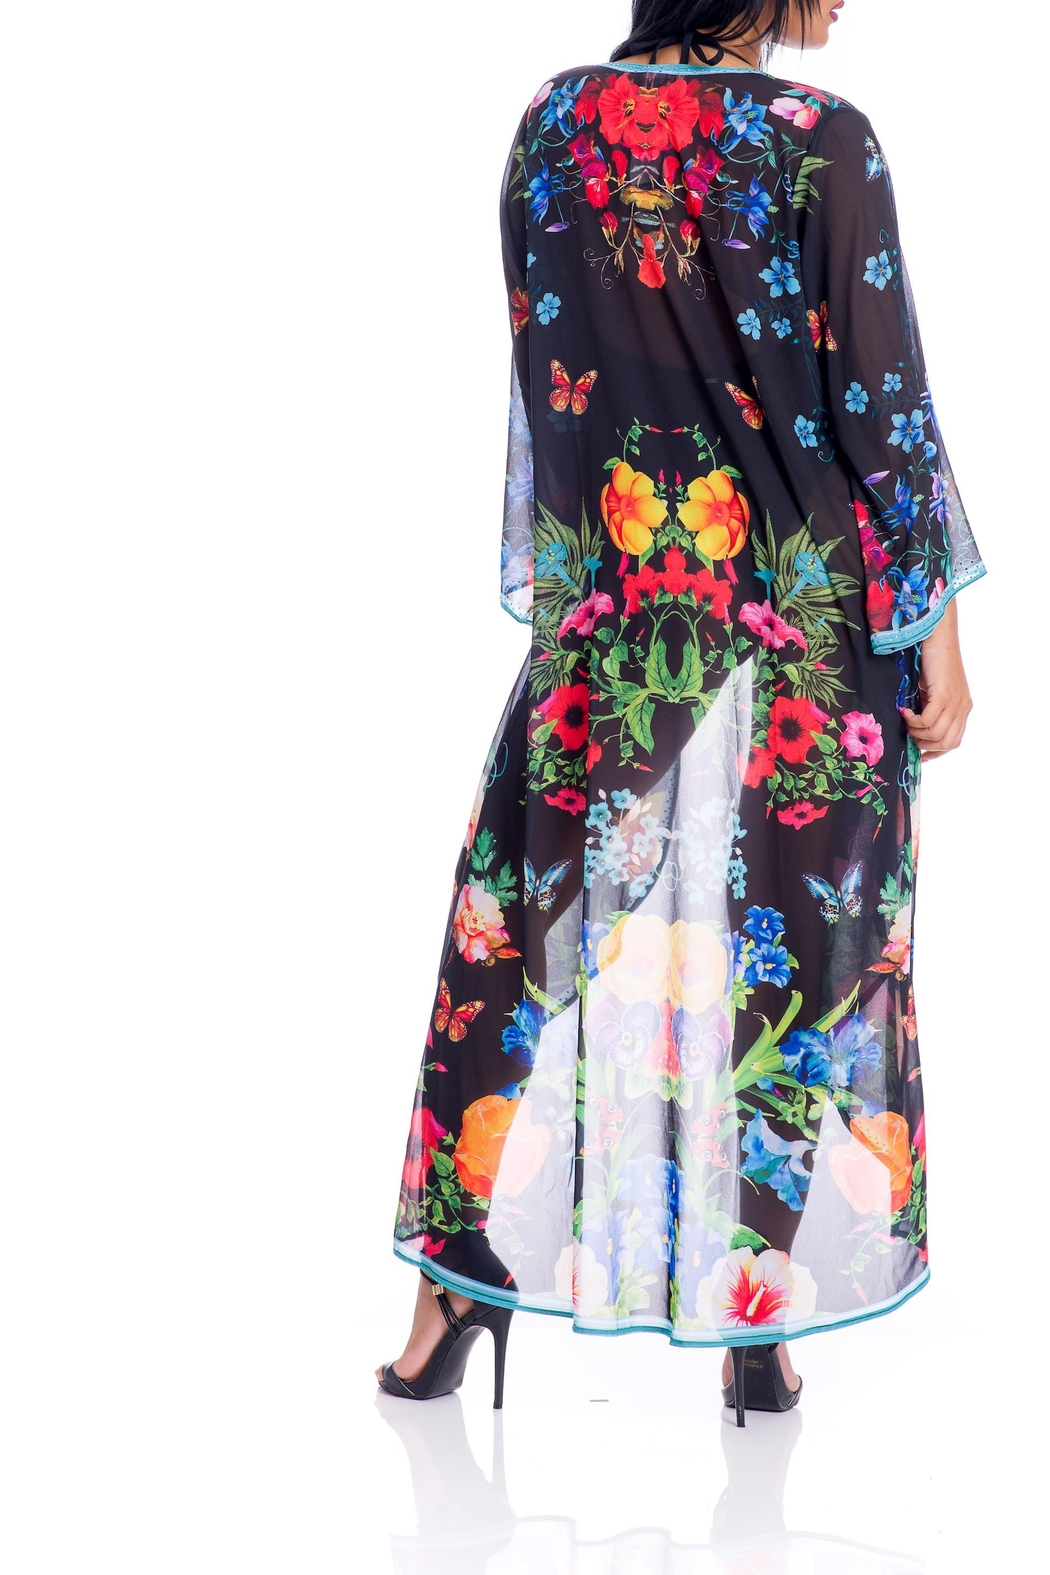 ranee?s Black Floral Duster - Back Cropped Image